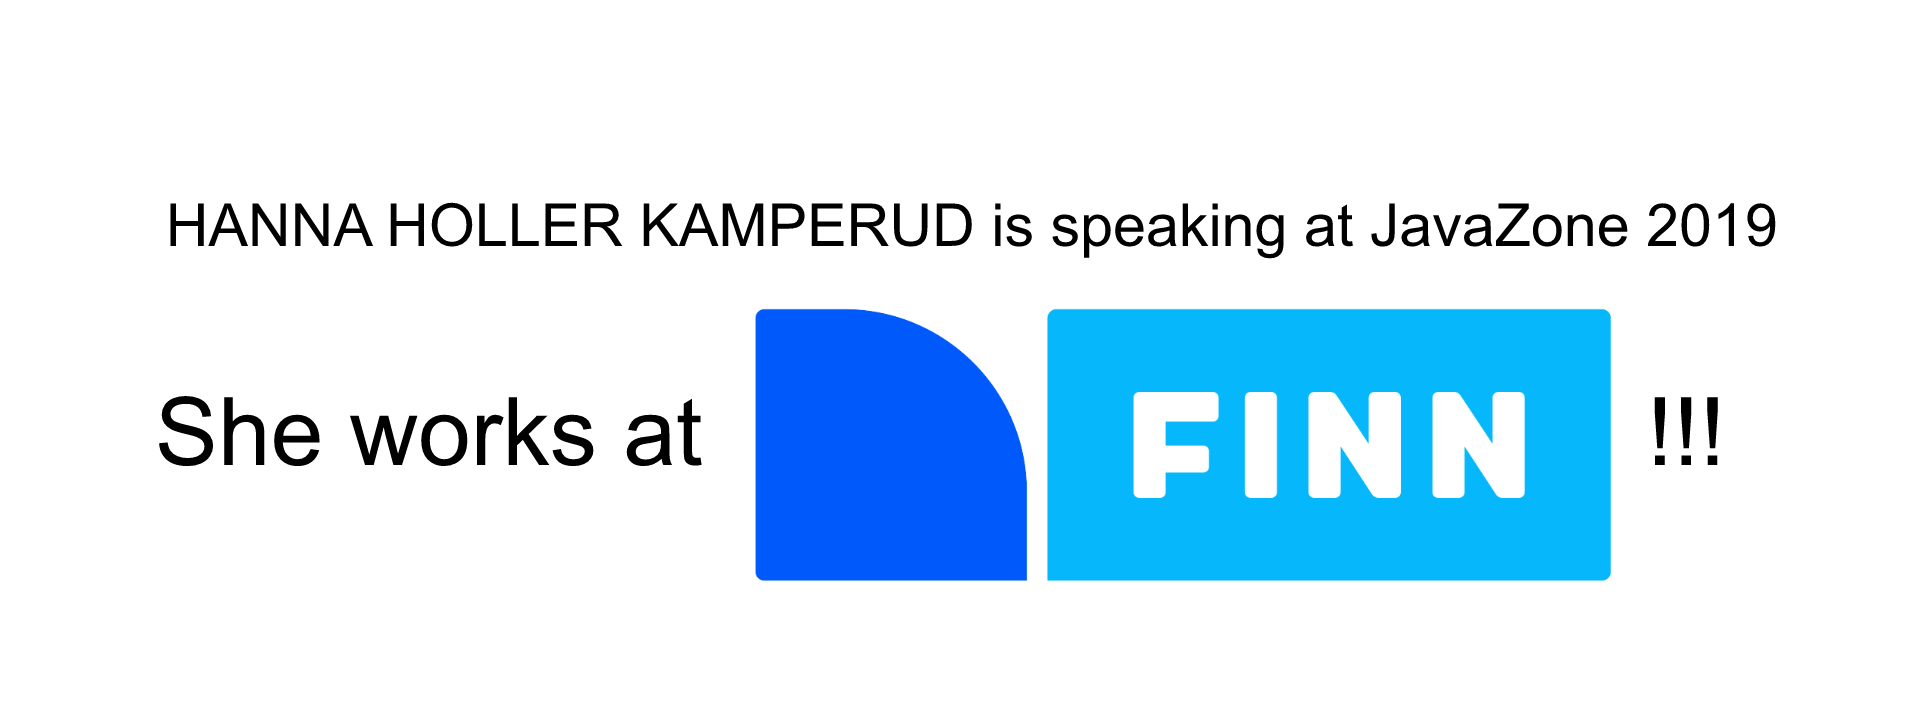 "Words written ""Hanna Holler Kamperud is speaking at JavaZone 2019"" and underneath in larger letters ""she works at FINN!!!"""